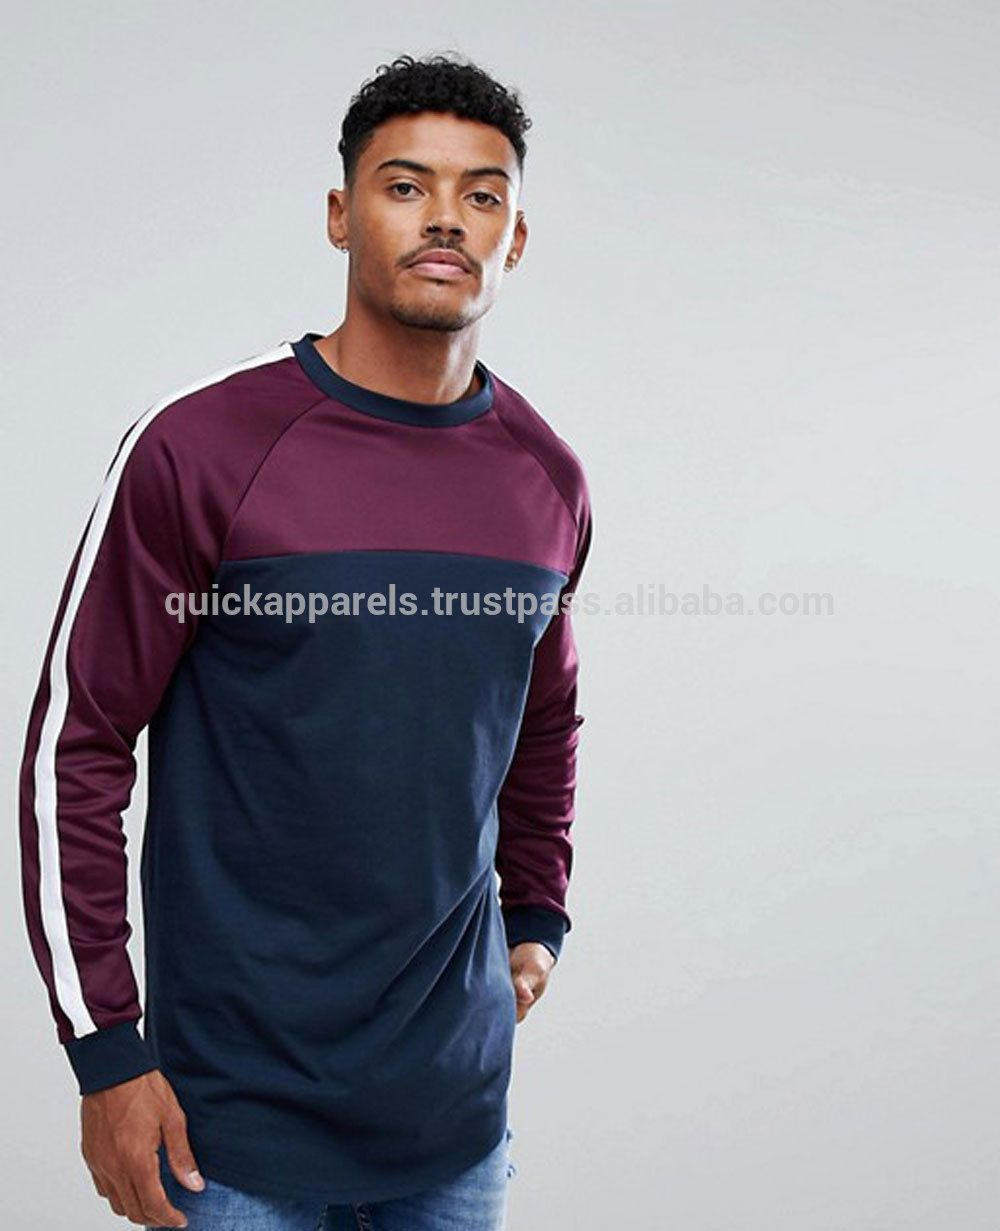 28410d98a1e7 wholesale China Clothing Manufacturer Custom Men Long Sleeve T shirt, US $  5 - 8 / Piece, OEM service, Pakistan, Quick Apparels.Source from QUICK  APPARELS ...